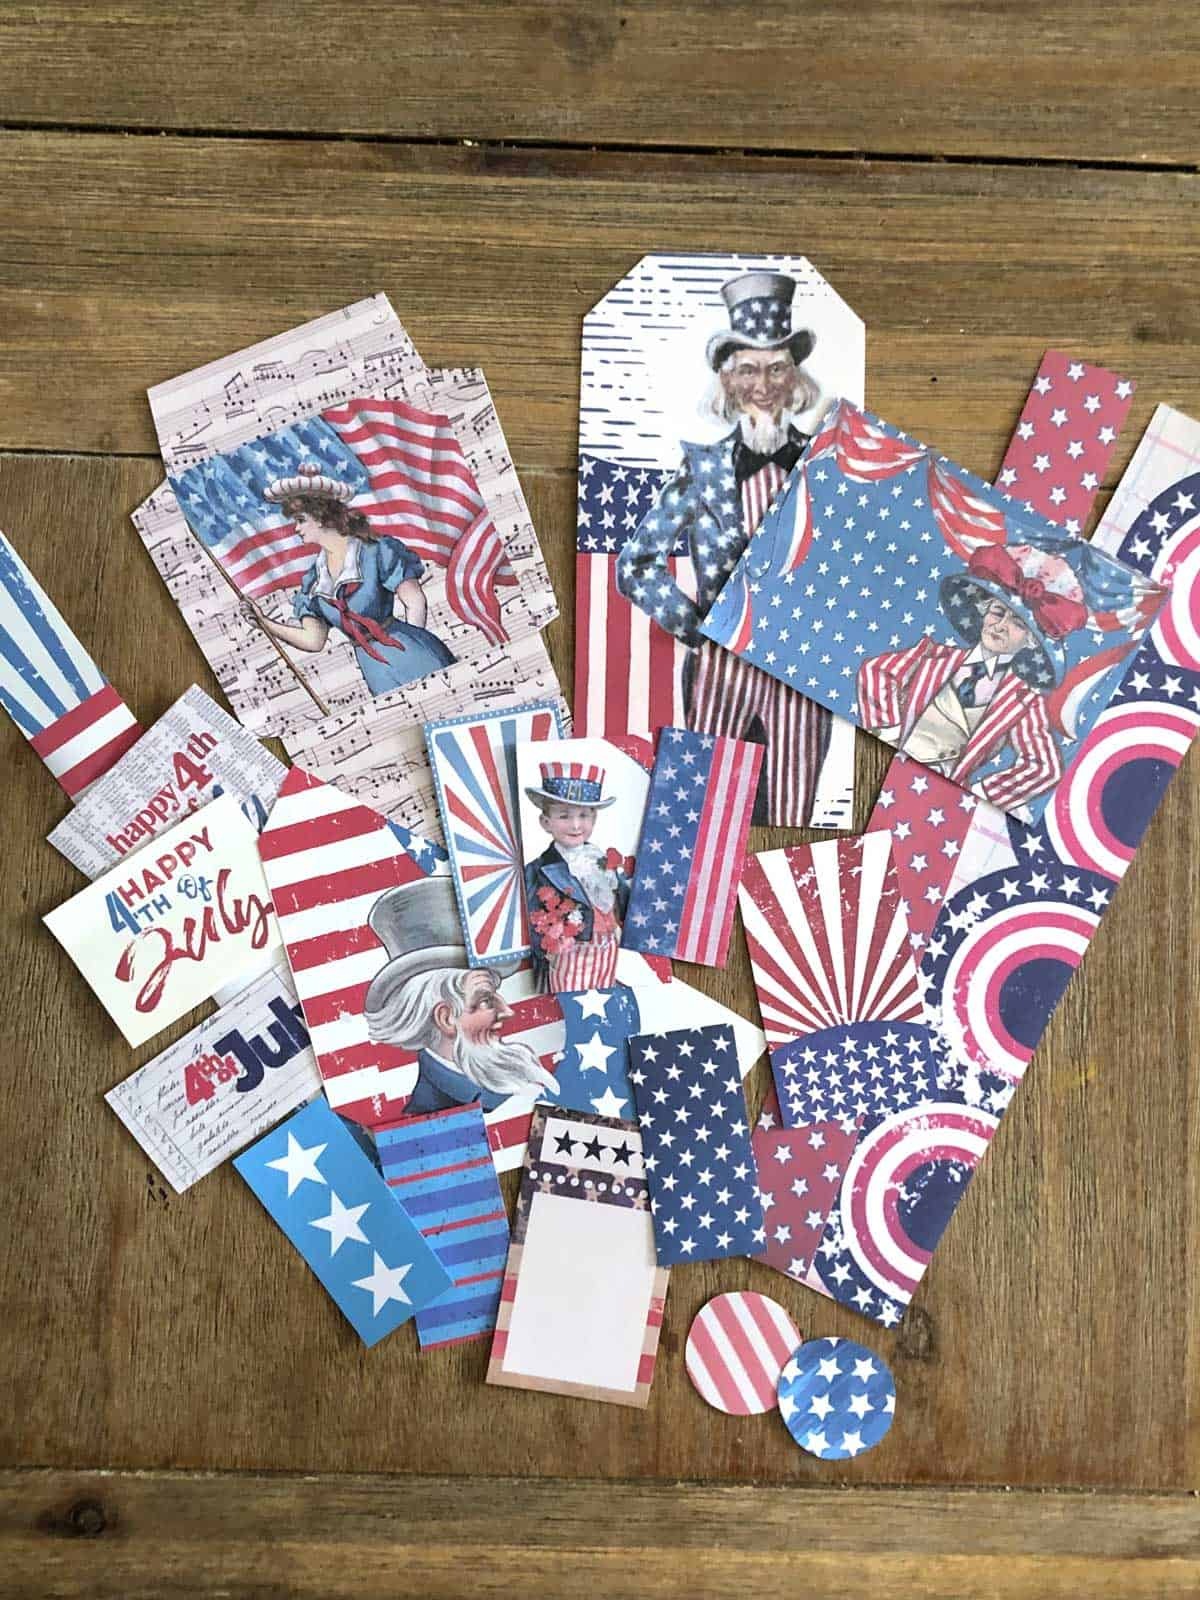 Free Printable 4th of July Ephemera - All Cut Out